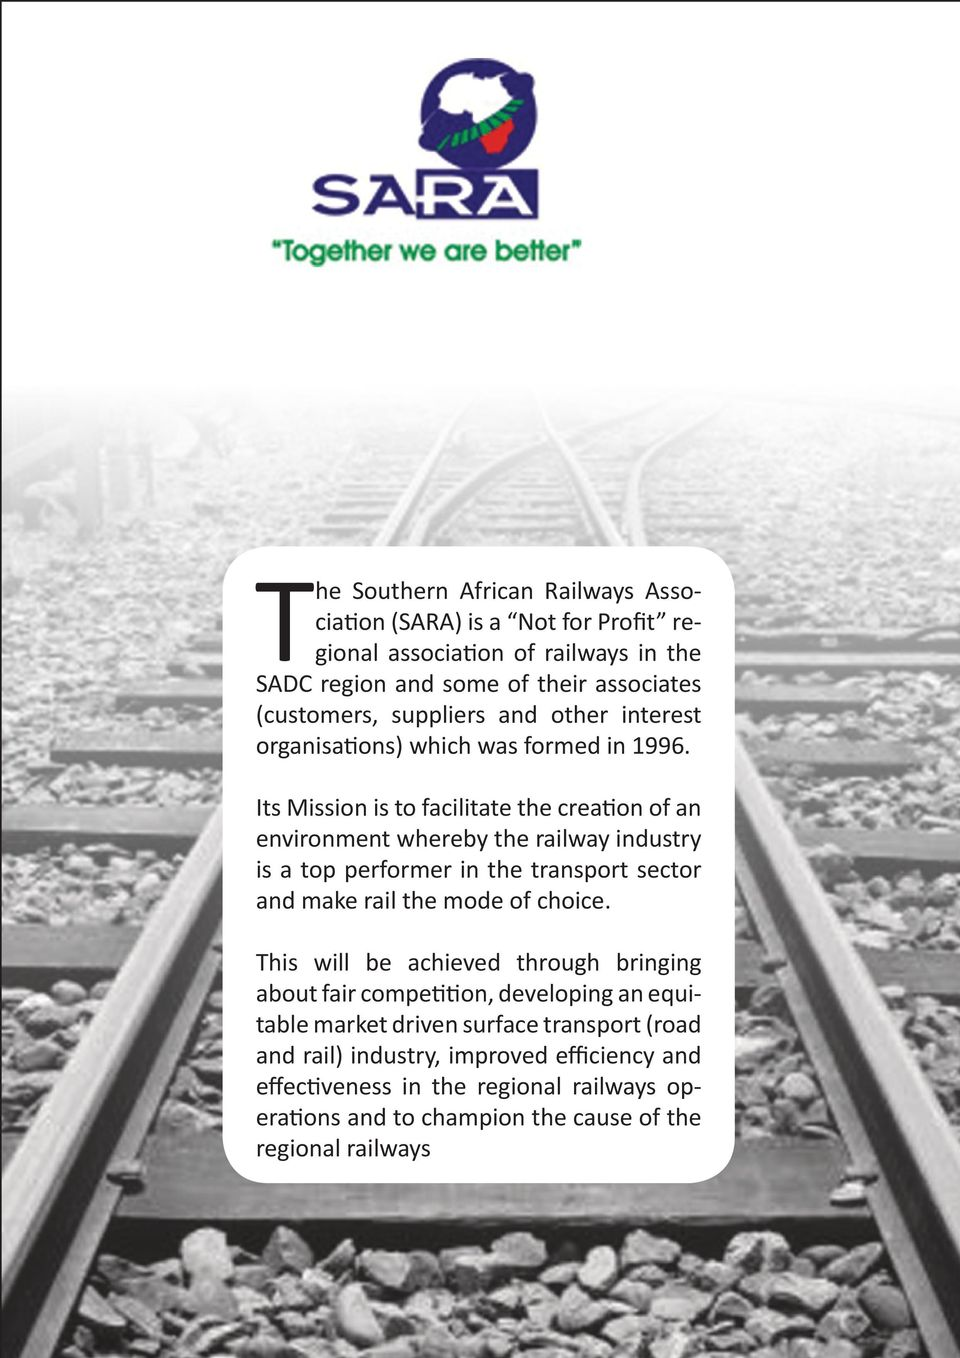 Its Mission is to facilitate the creation of an environment whereby the railway industry is a top performer in the transport sector and make rail the mode of choice.